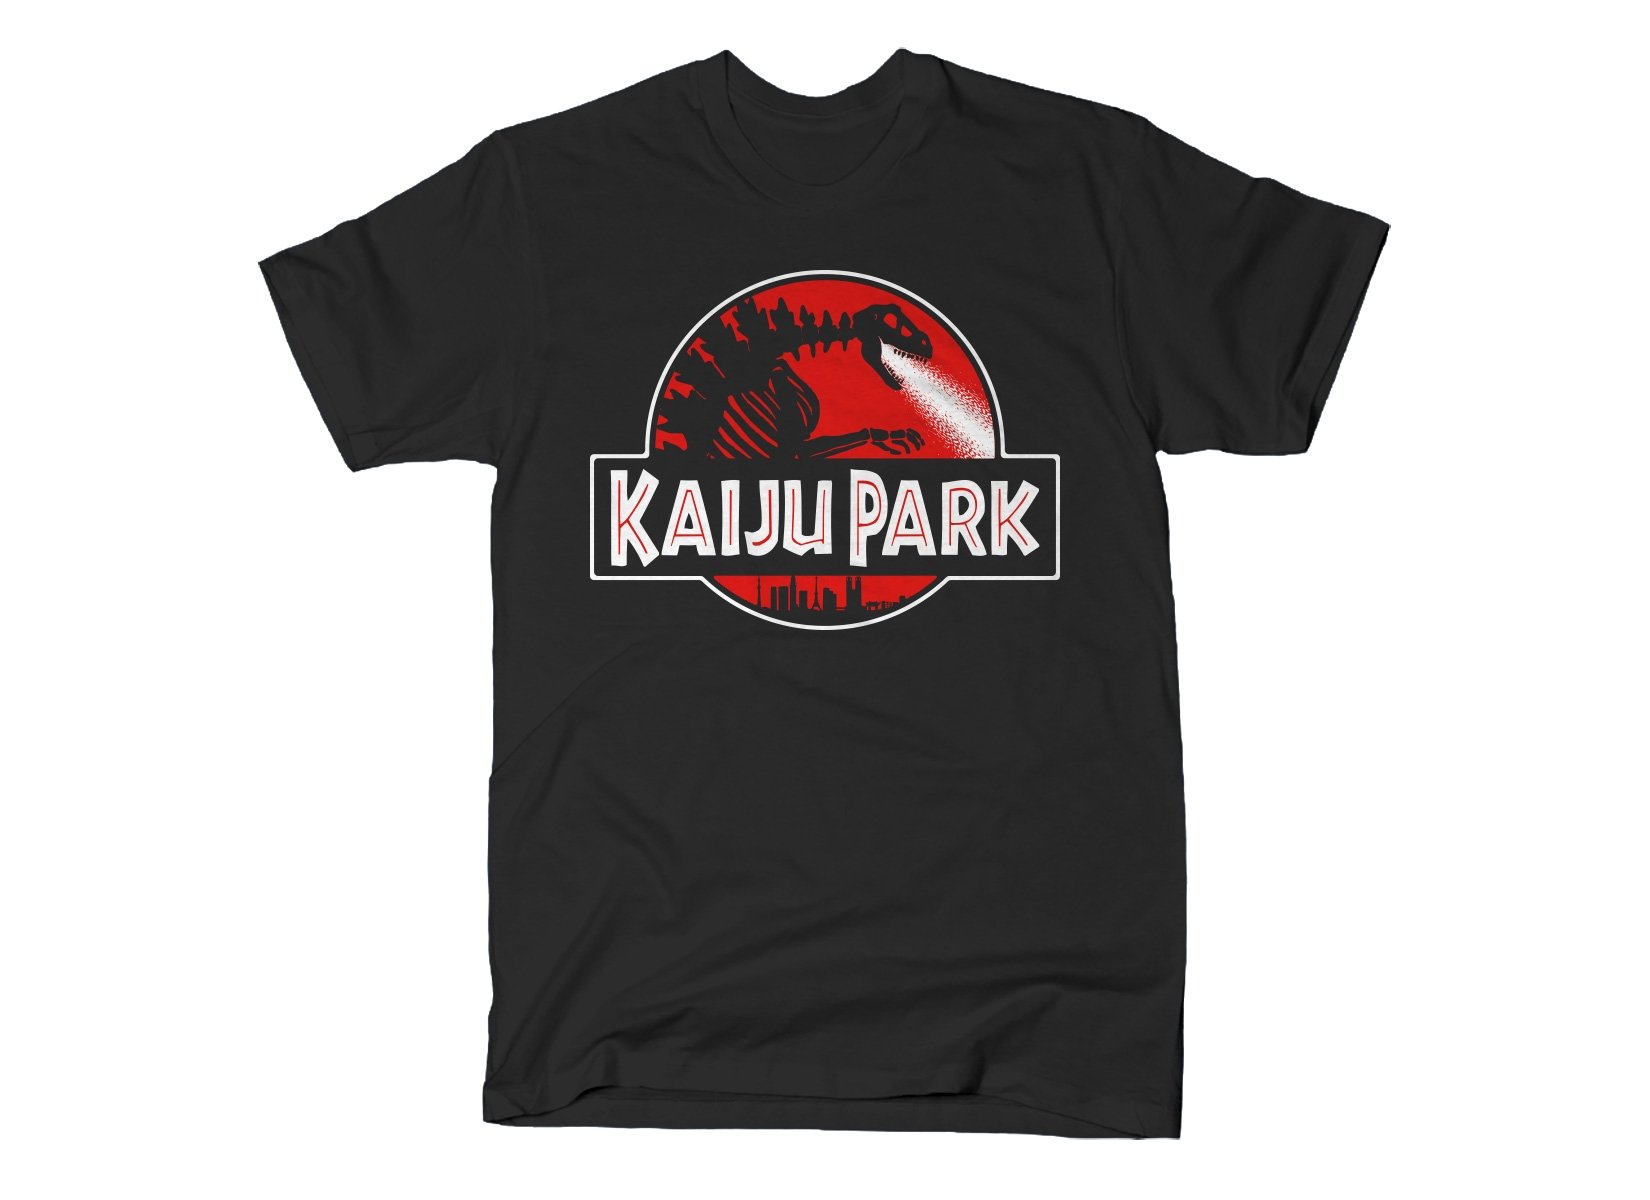 Kaiju Park on Mens T-Shirt